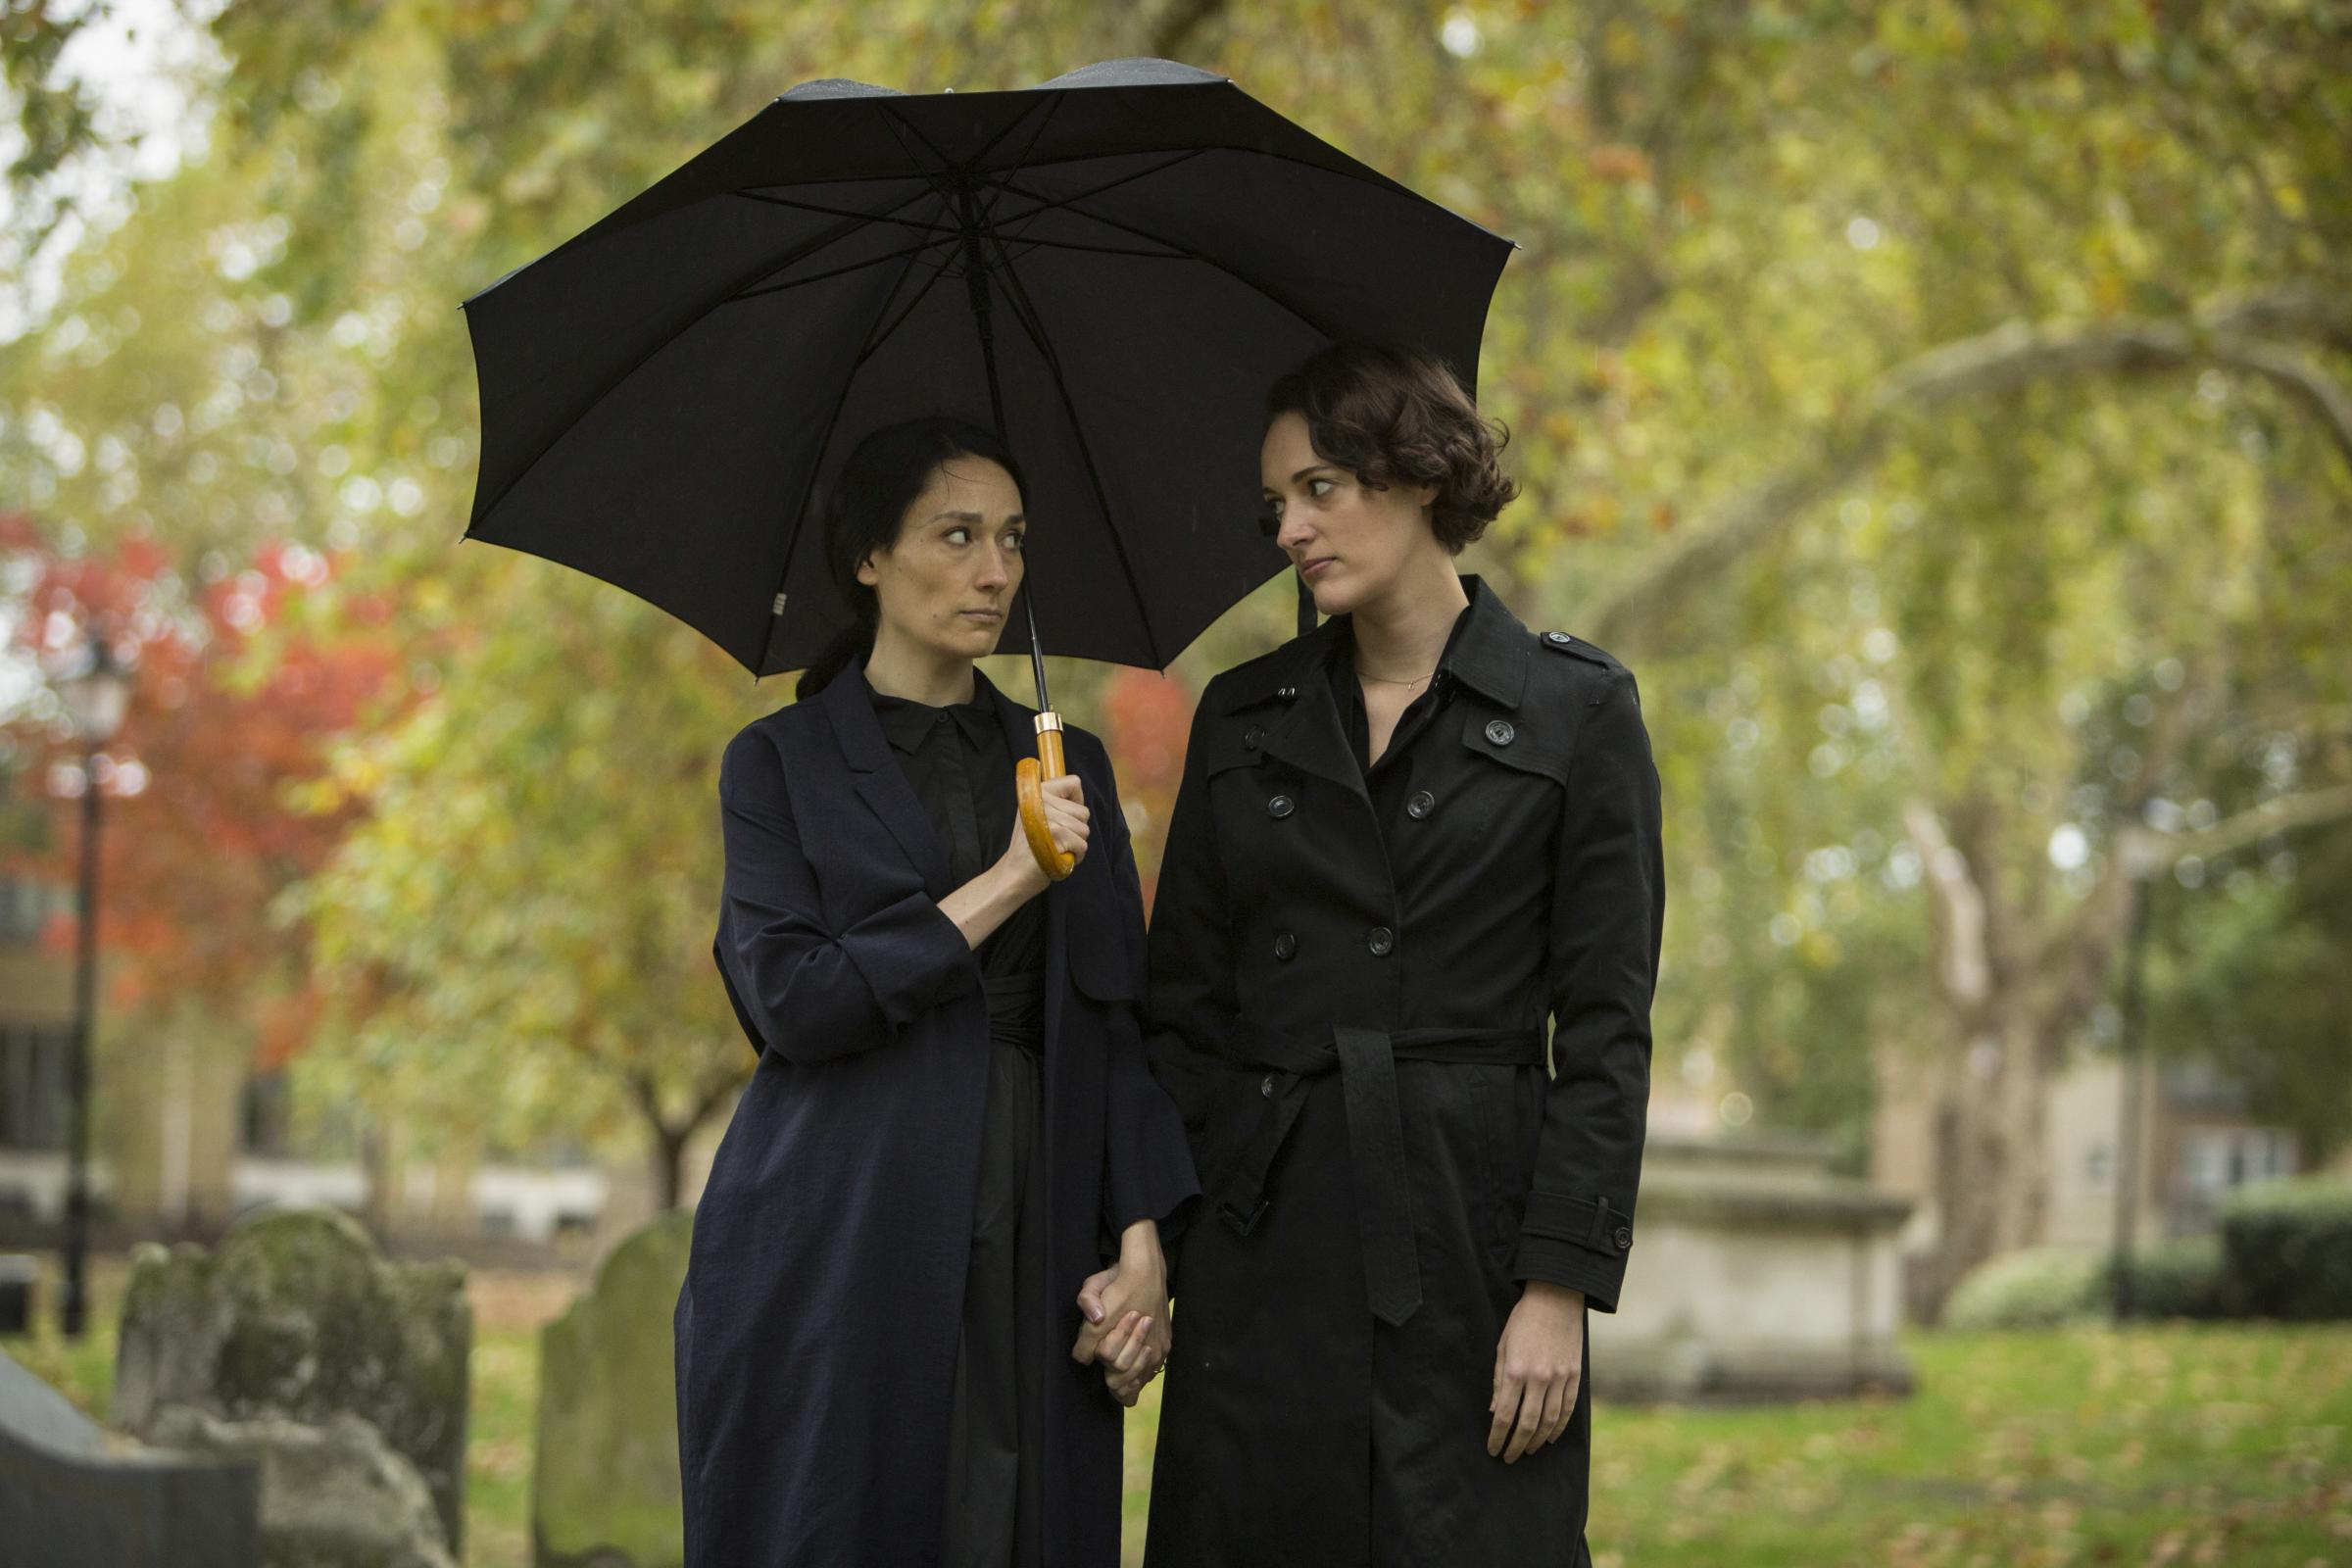 Phoebe Waller-Bridge as Fleabag (right) and Sian Clifford as Claire in Fleabag